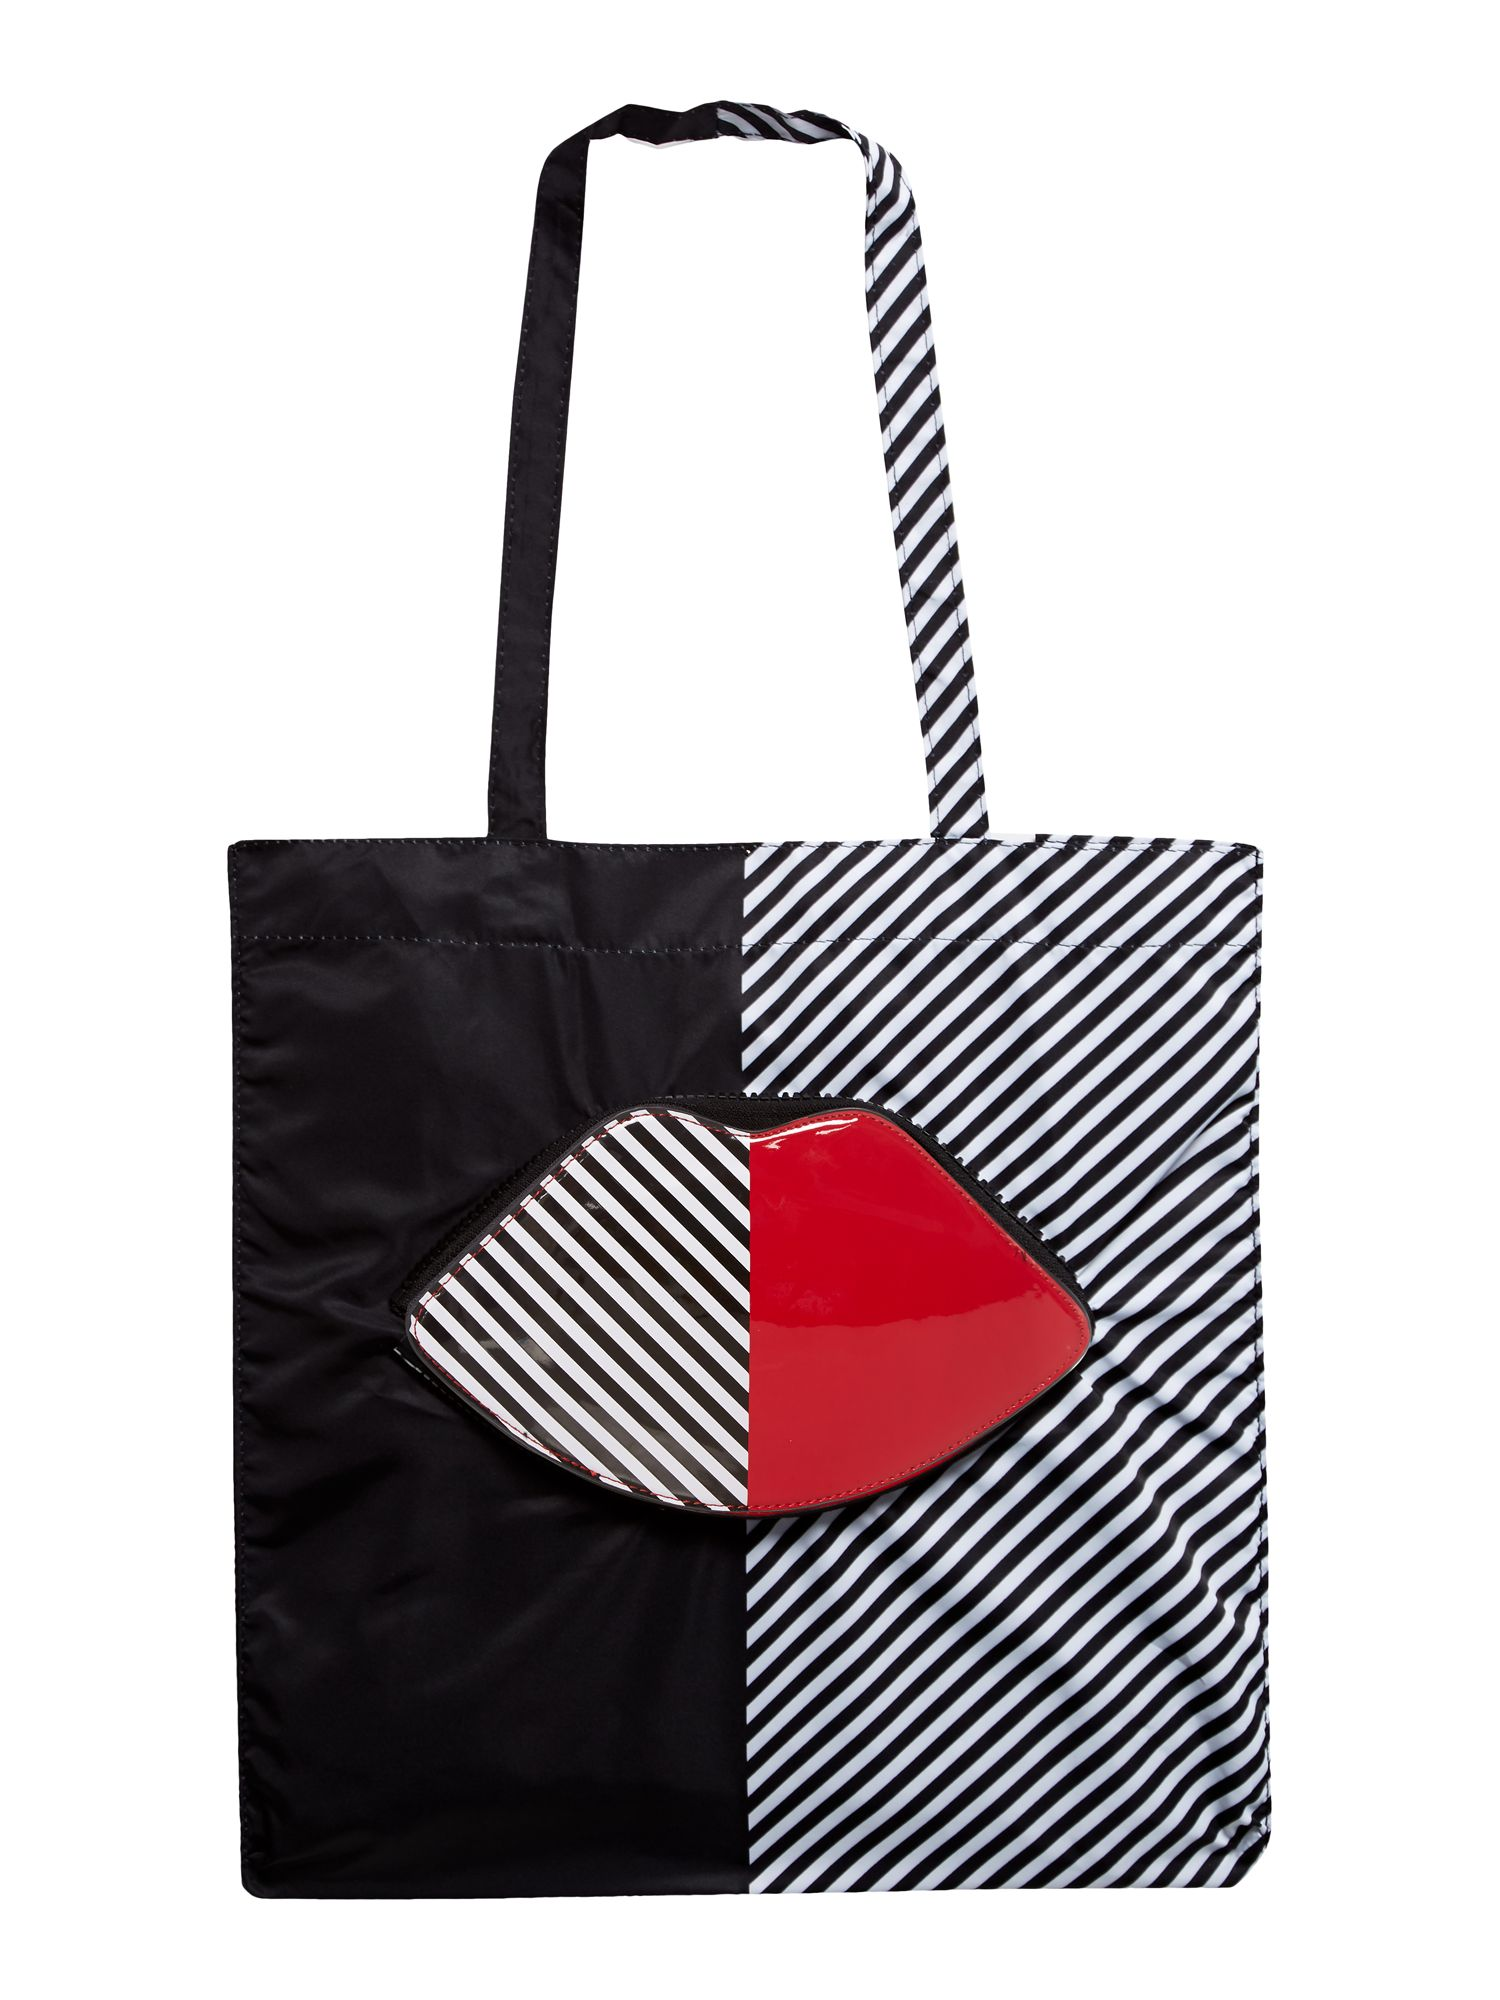 Lulu Guinness 50:50 Lip Foldaway Tote Bag, Multi-Coloured